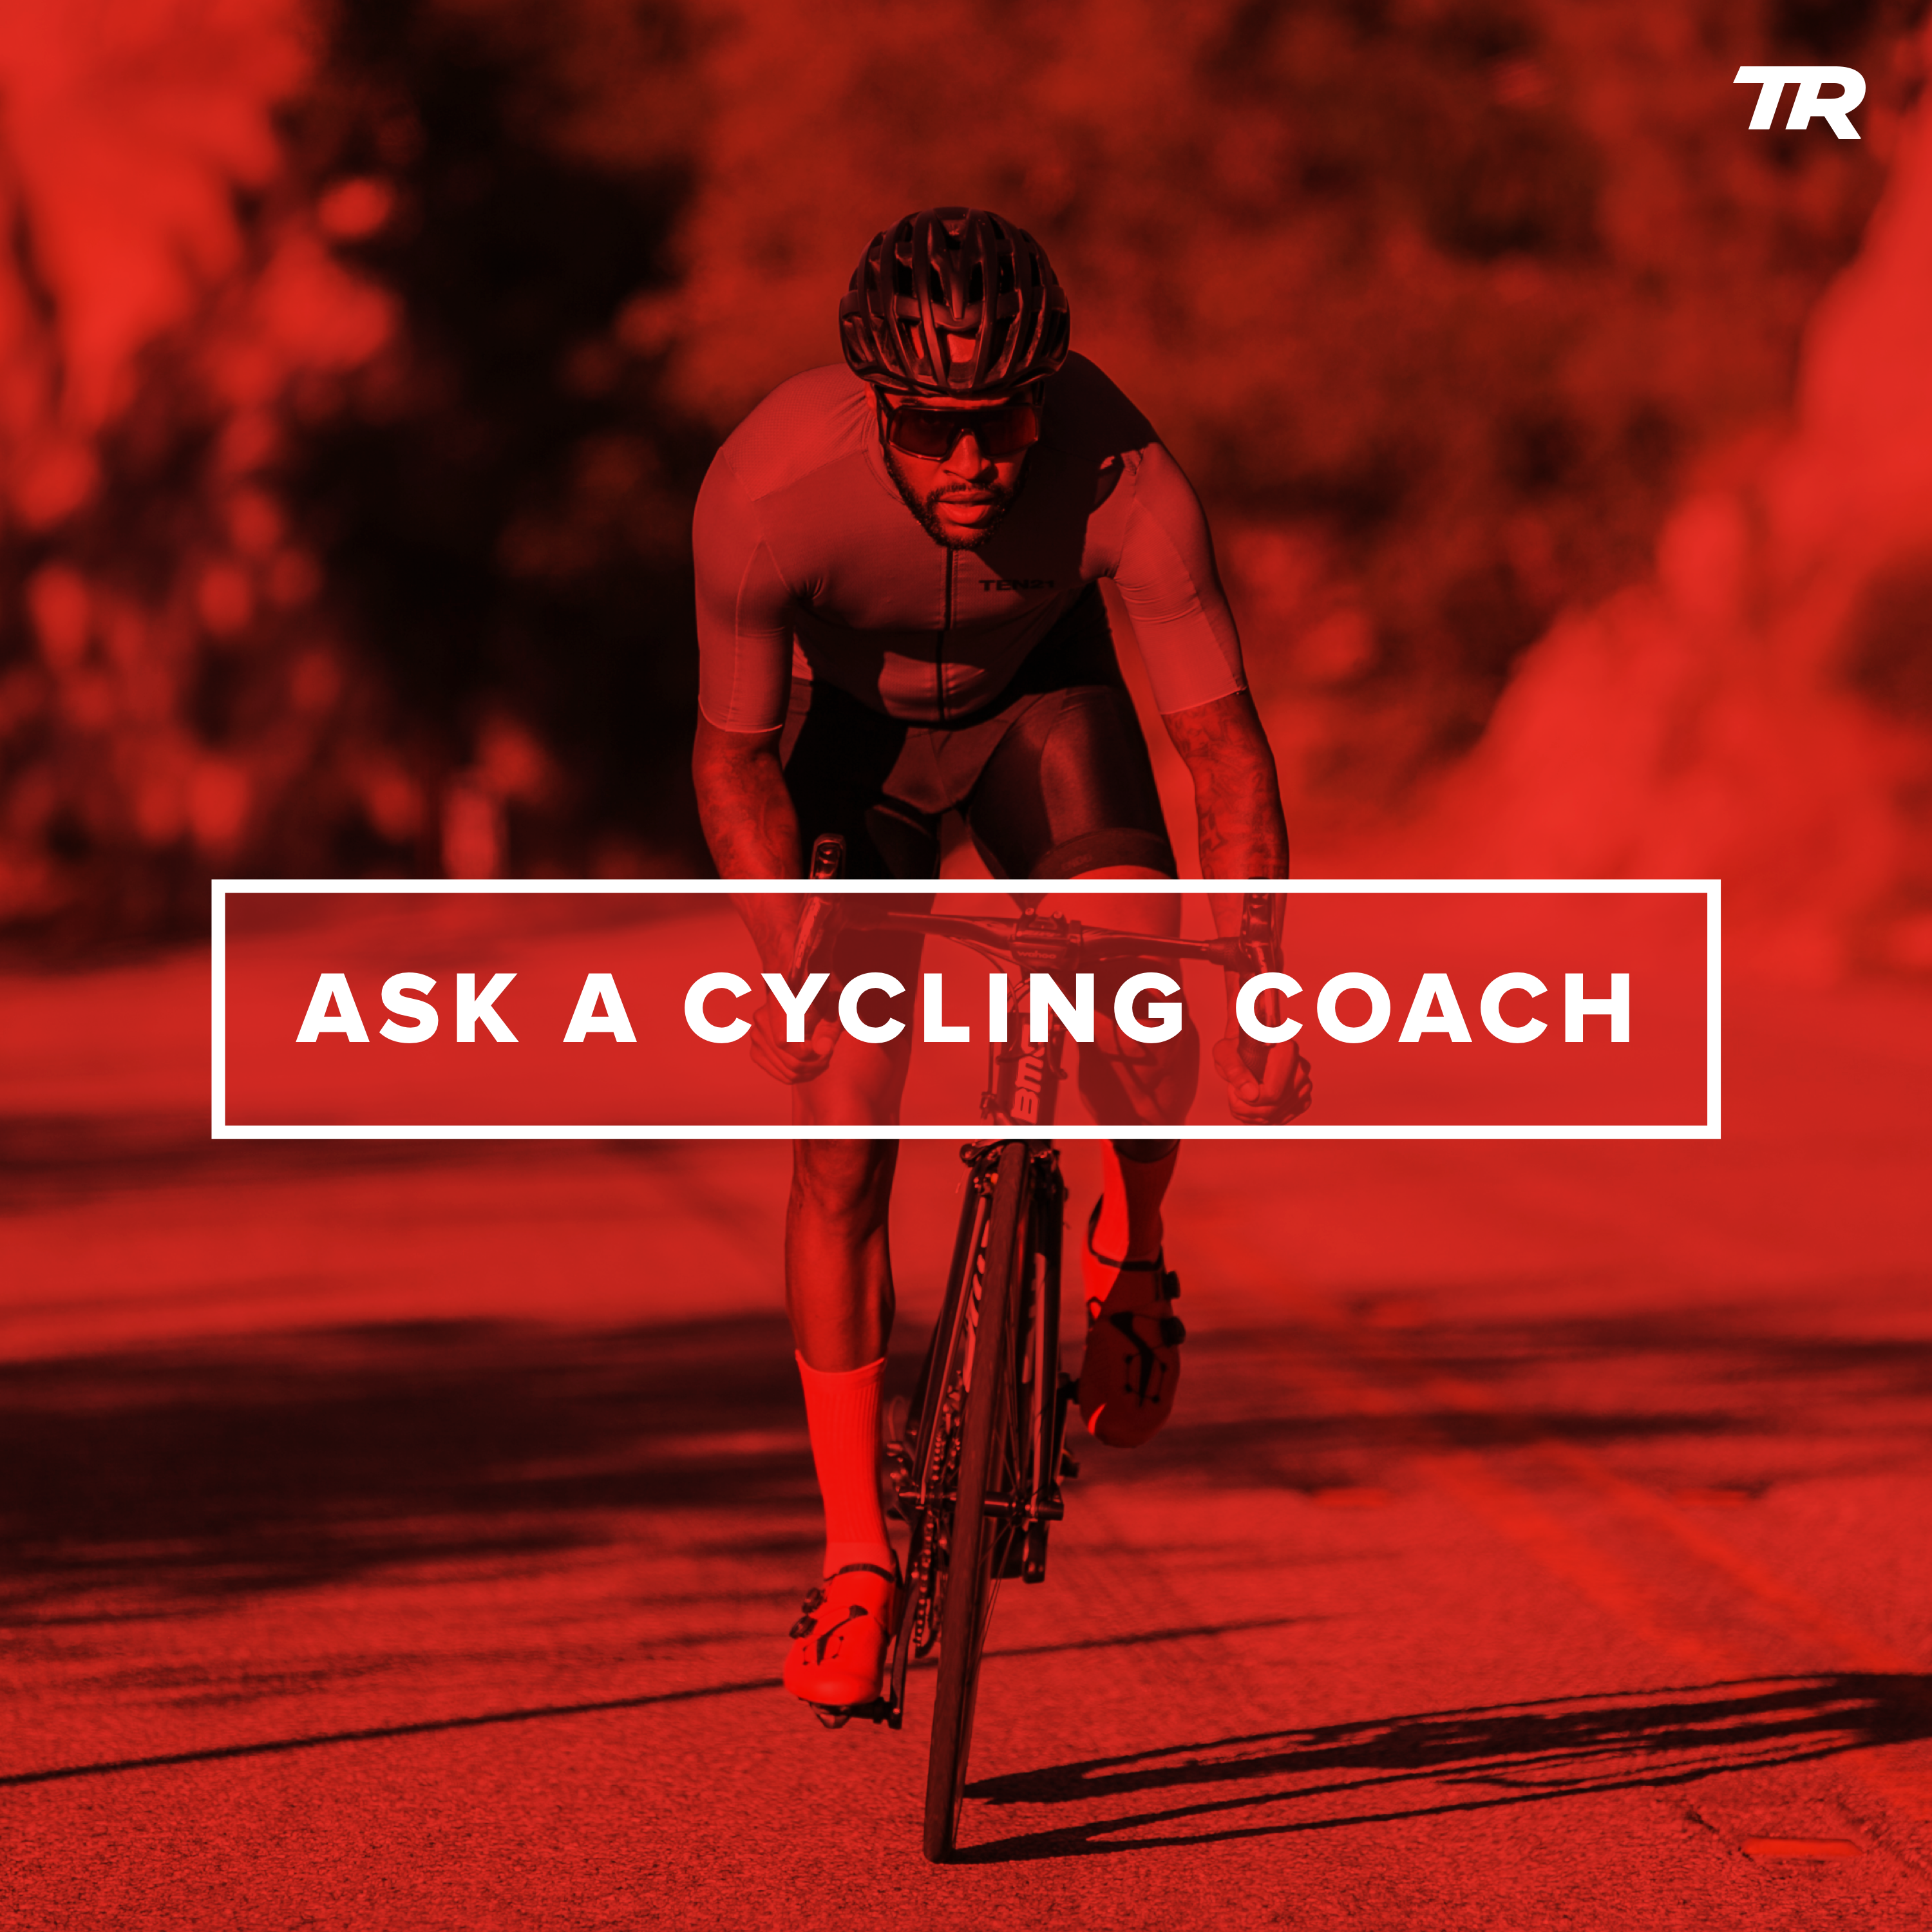 Welcome to the Ask a Cycling Coach Podcast!